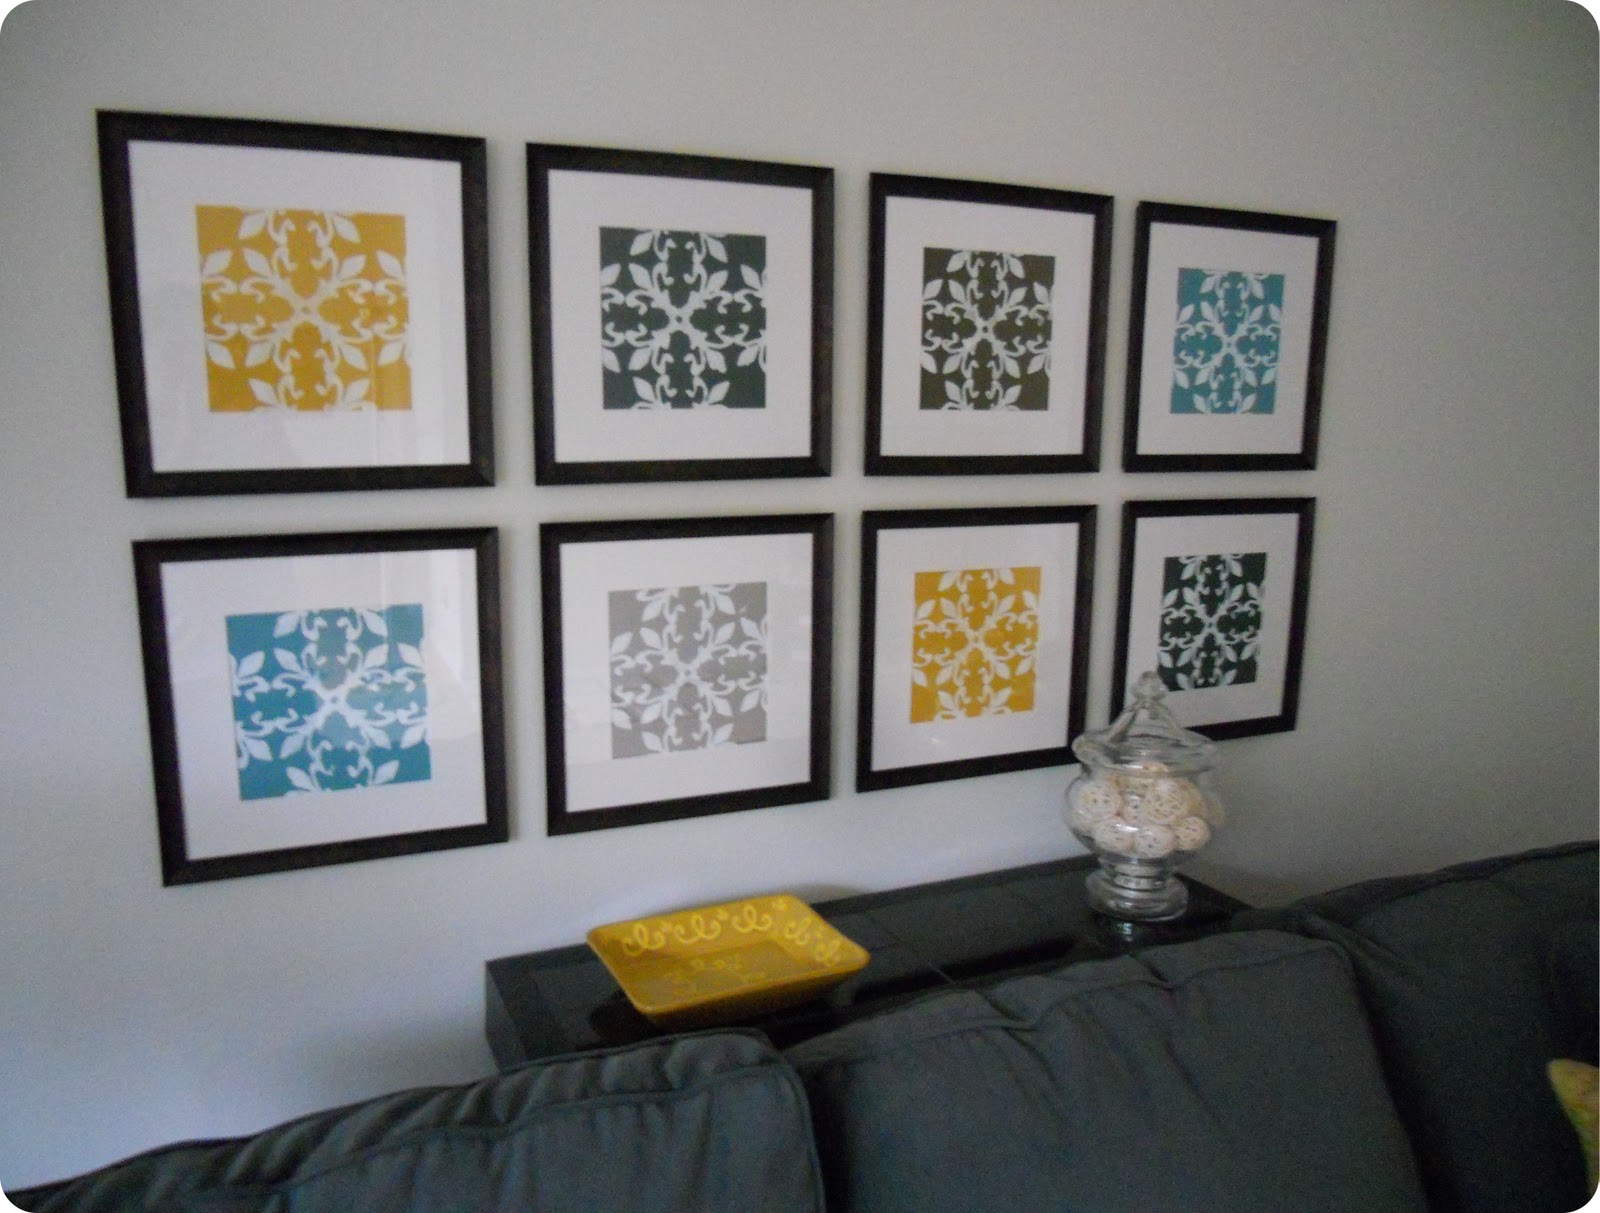 Cheap Wall Art Ideas Of In The Yhl Post They Mentioned This Art From Crate And